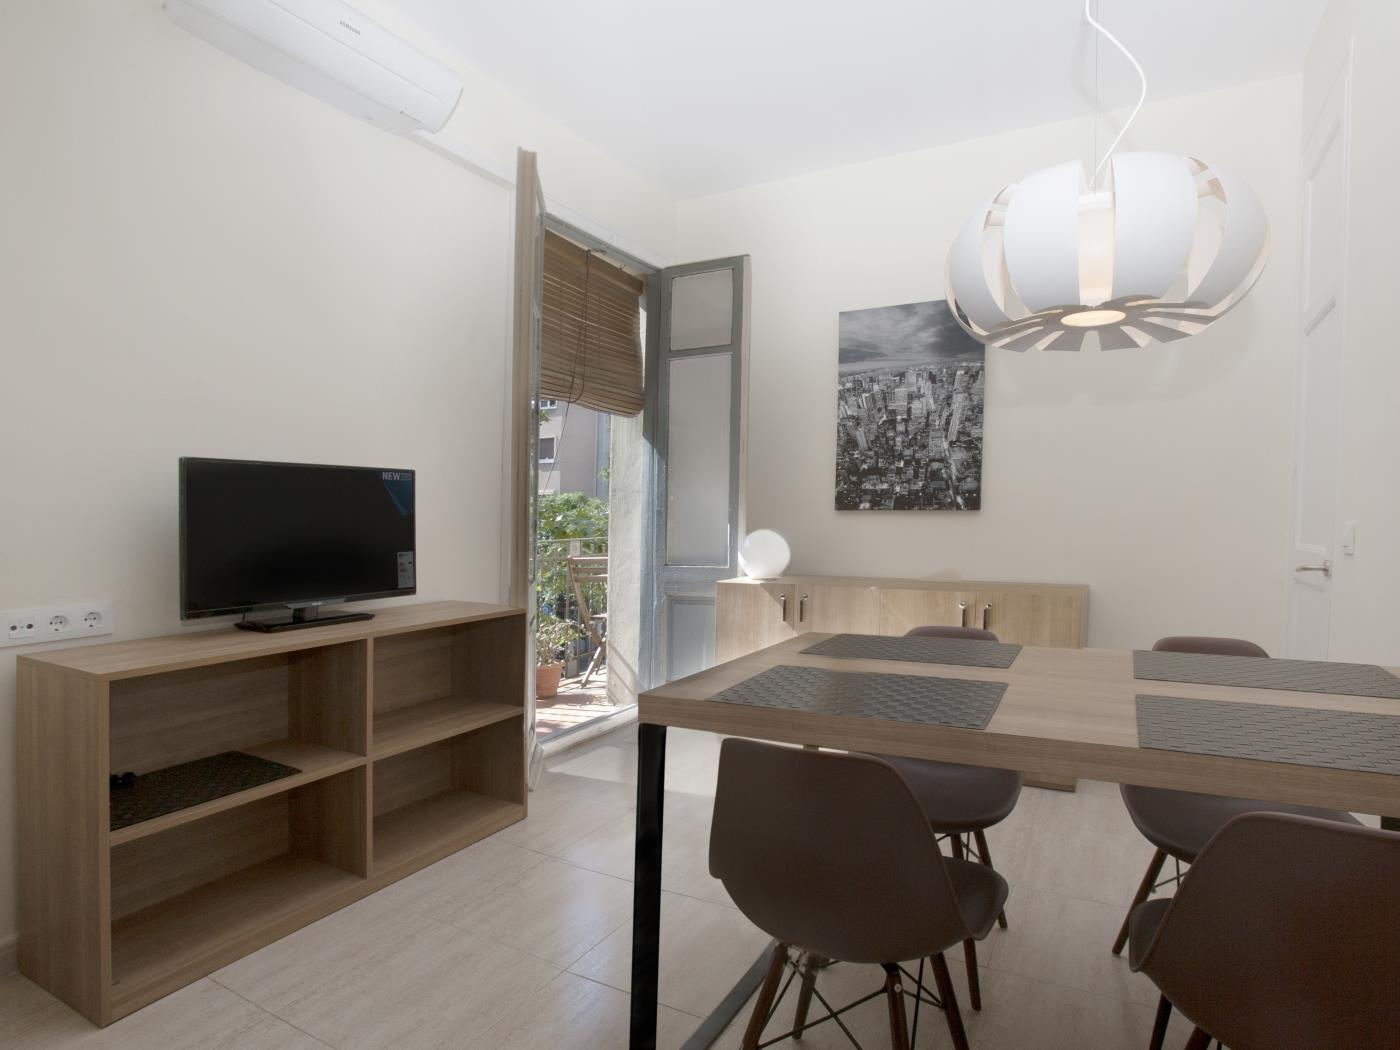 Amazing apartment in Sagrada Familia with balcony for 5 - My Space Barcelona Apartments